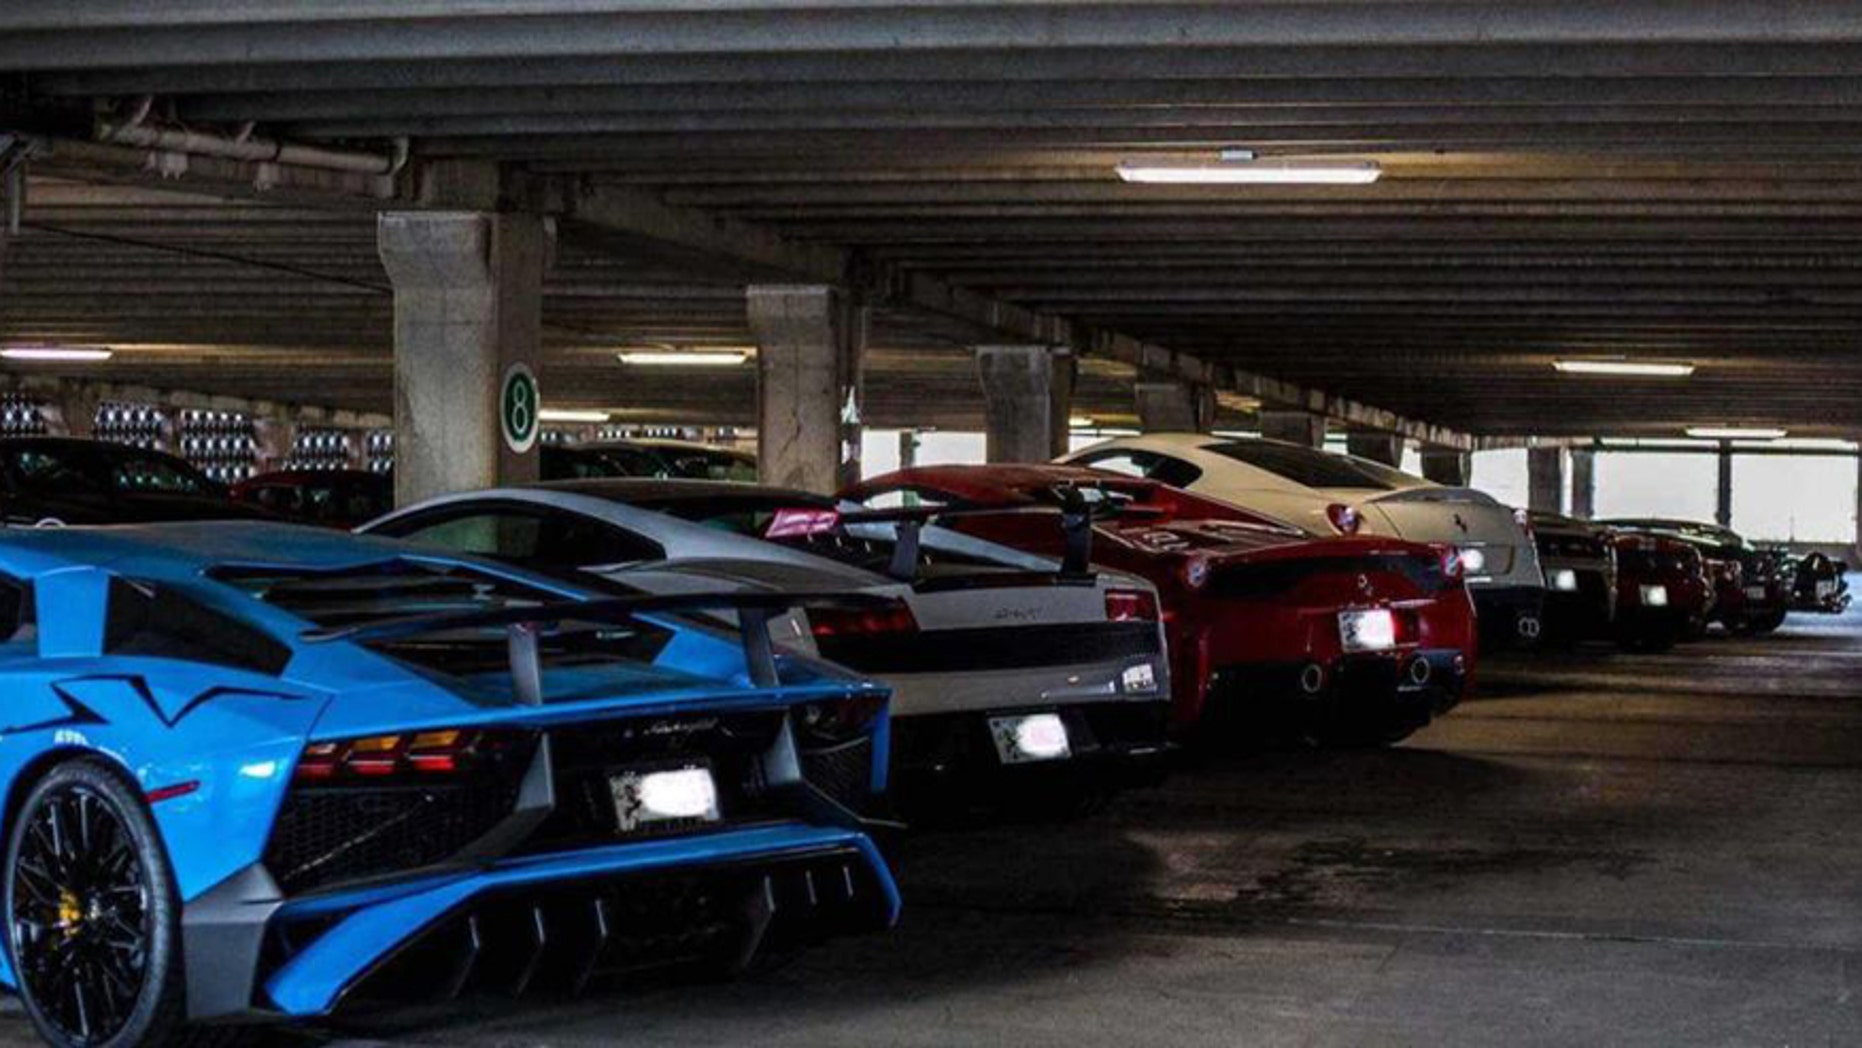 Dozens Of Sports Cars Worth Millions Found In Public Garage But